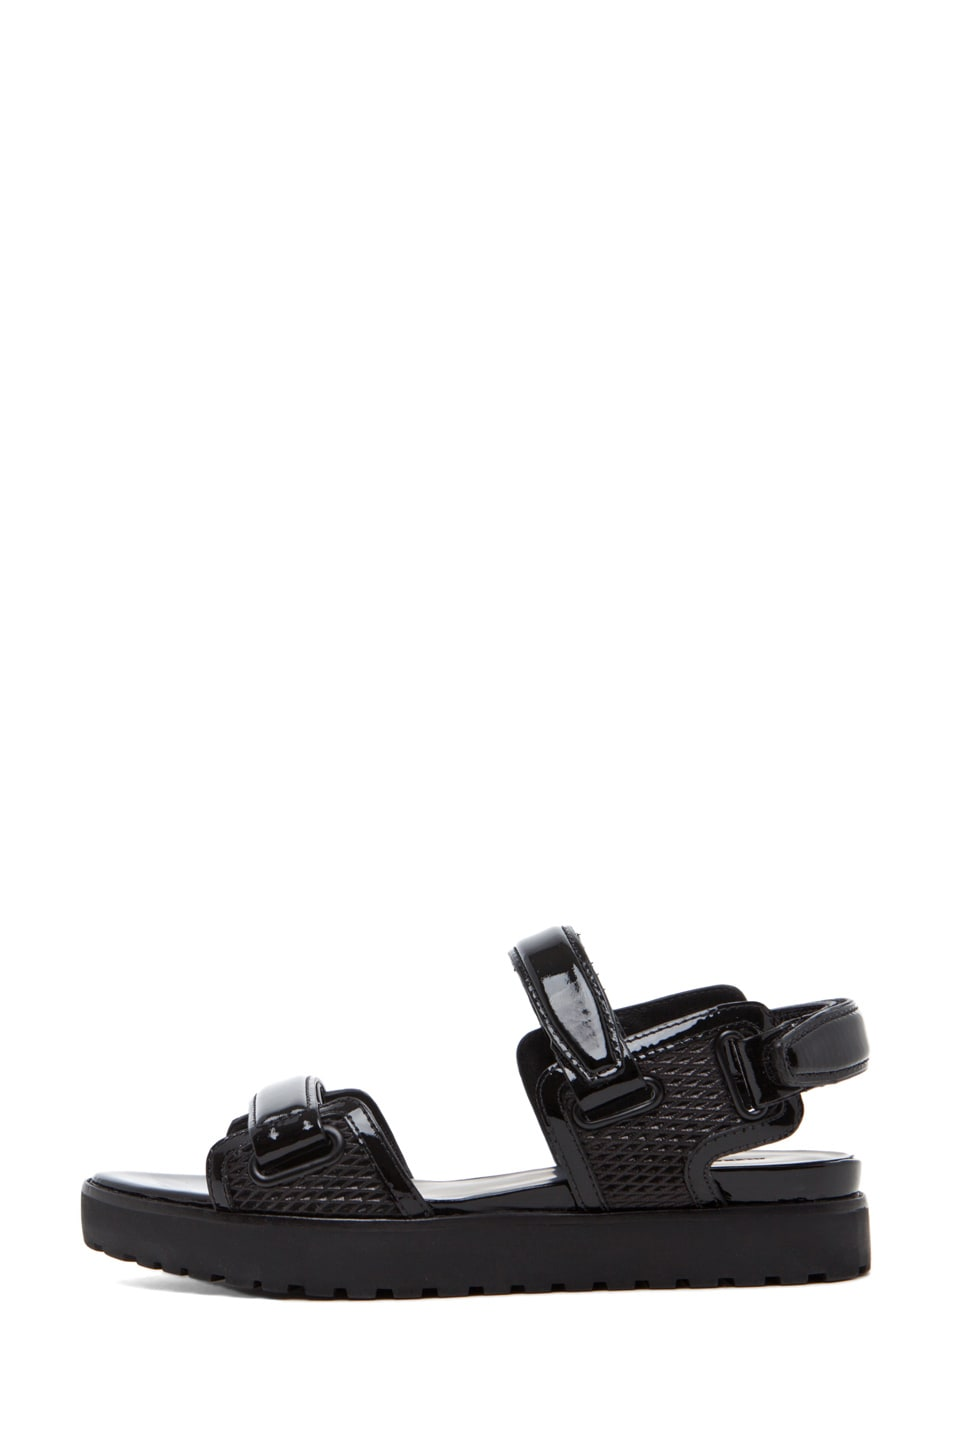 Image 1 of Alexander Wang Karlie Flat Mesh Sandal in Black